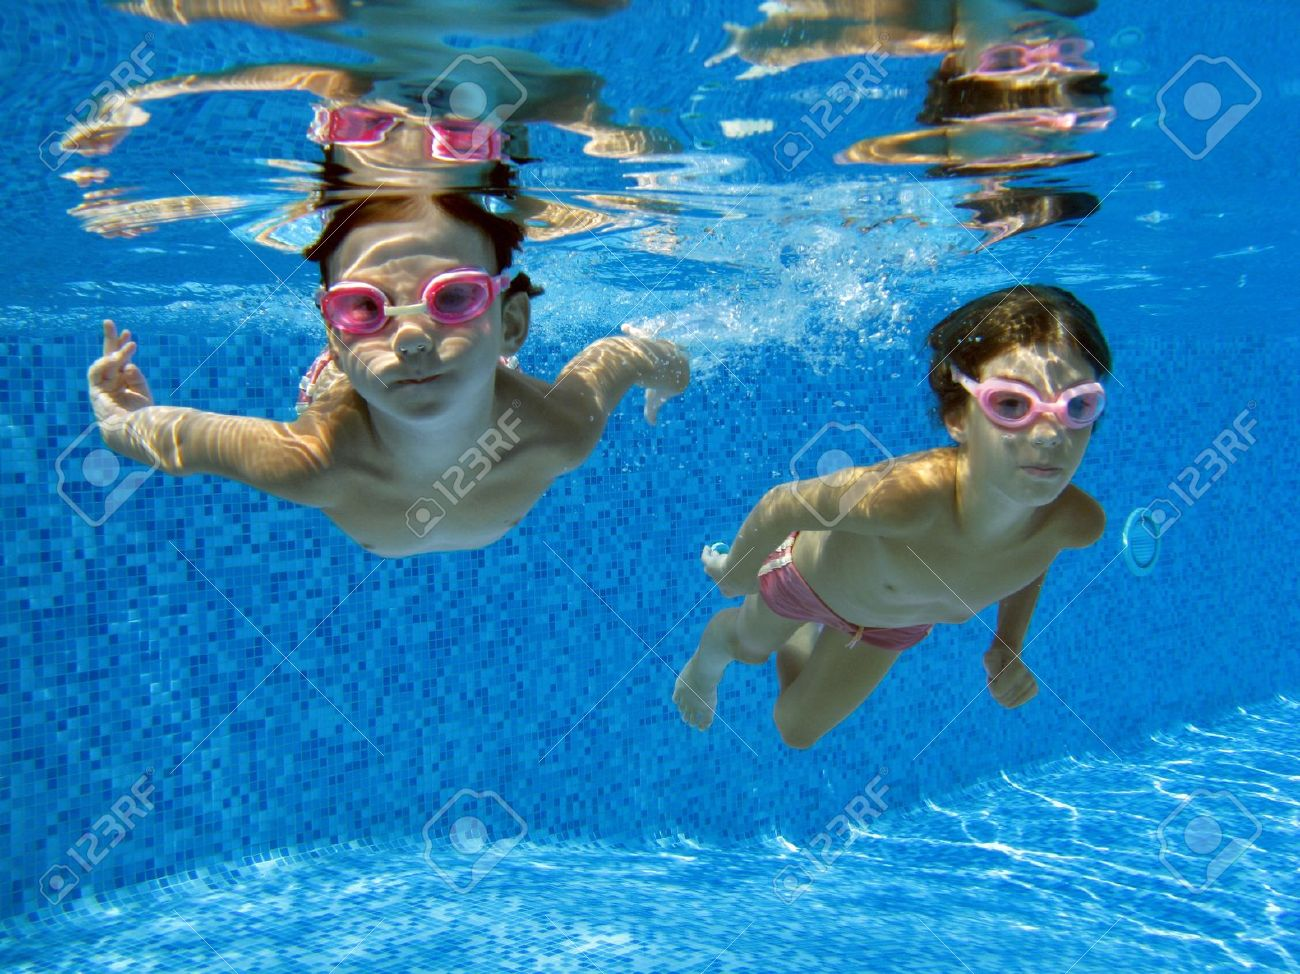 Two Underwater Girls In Swimming Pool Stock Photo Picture And Royalty Free Image Image 9330127